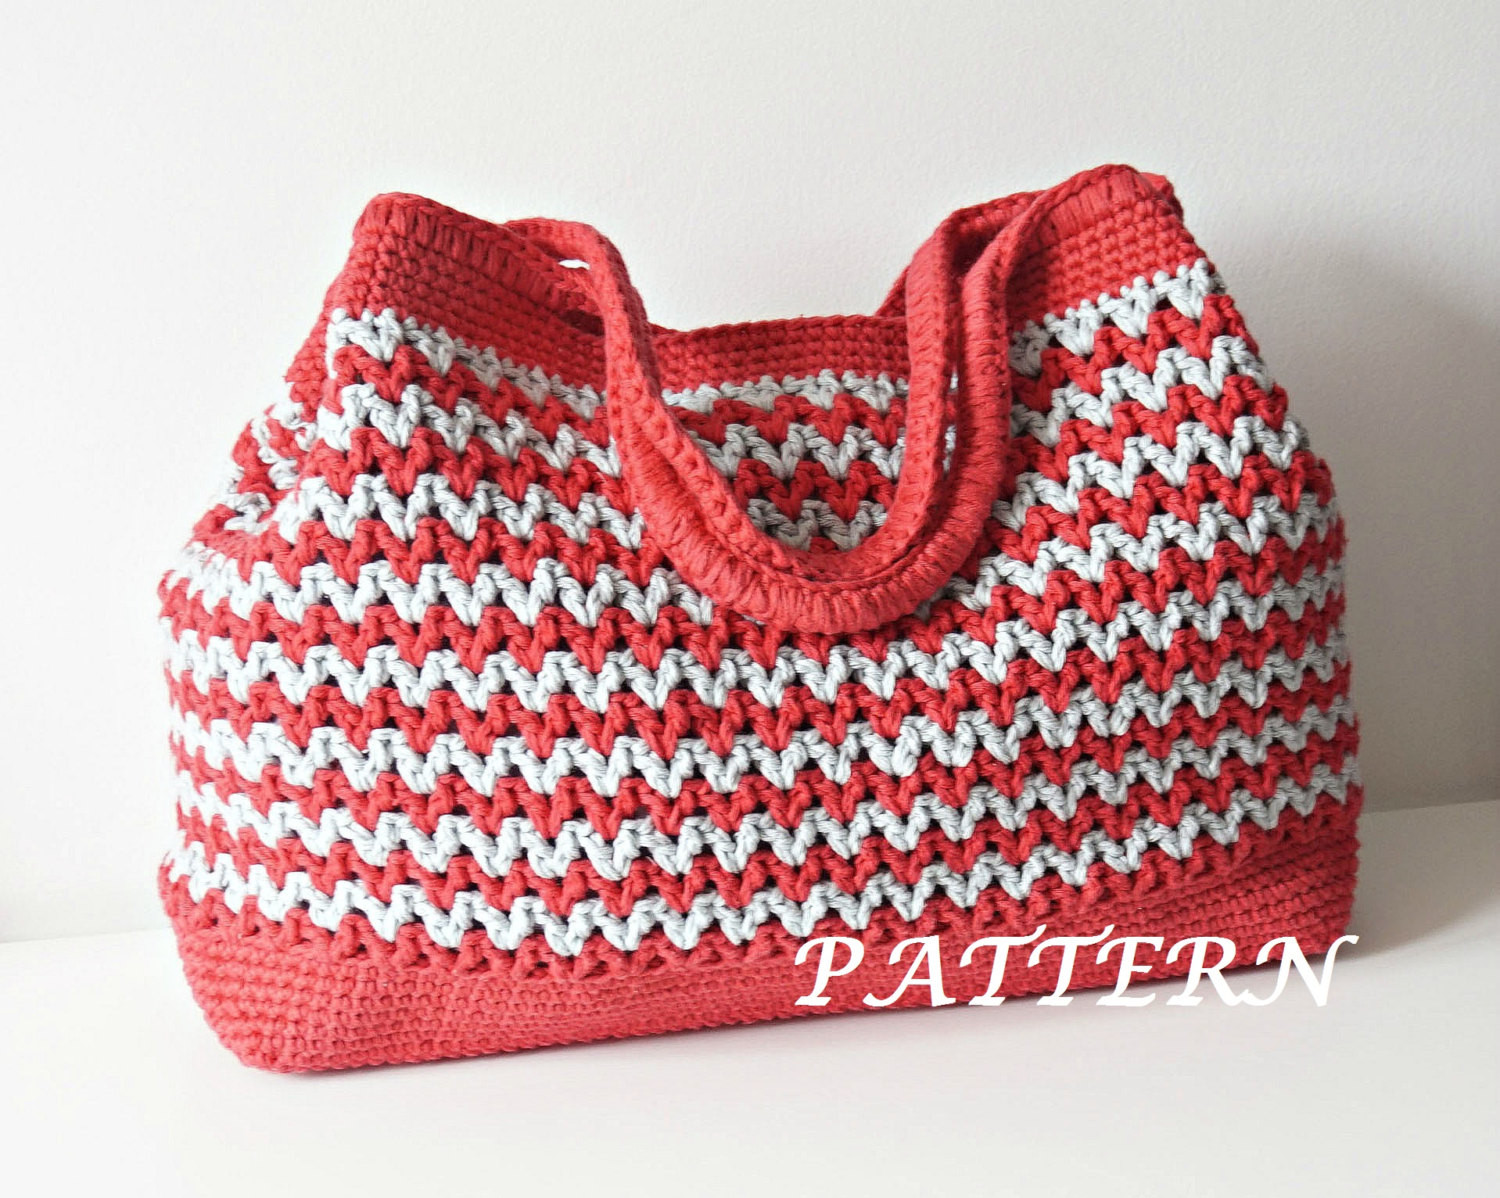 Crochet Purse Pattern New Crochet Pattern Crochet Bag Pattern tote Pattern by iswoolish Of Adorable 44 Photos Crochet Purse Pattern